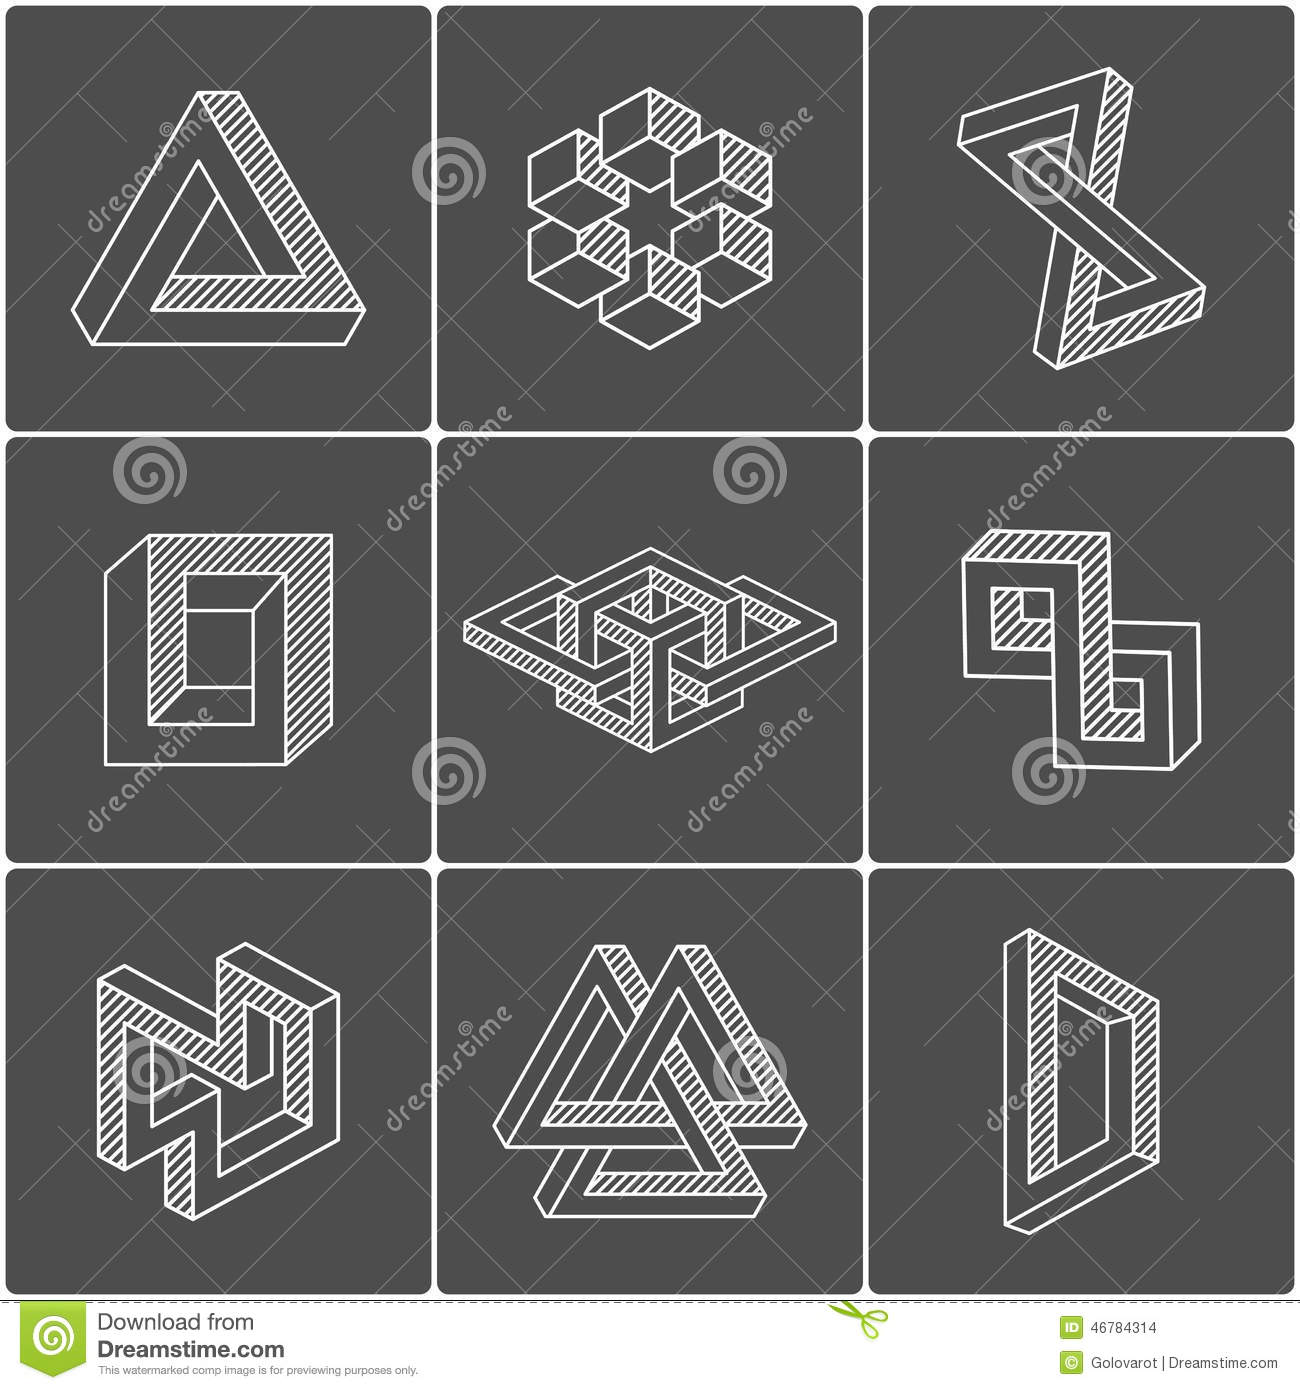 how to draw optical illusion shapes